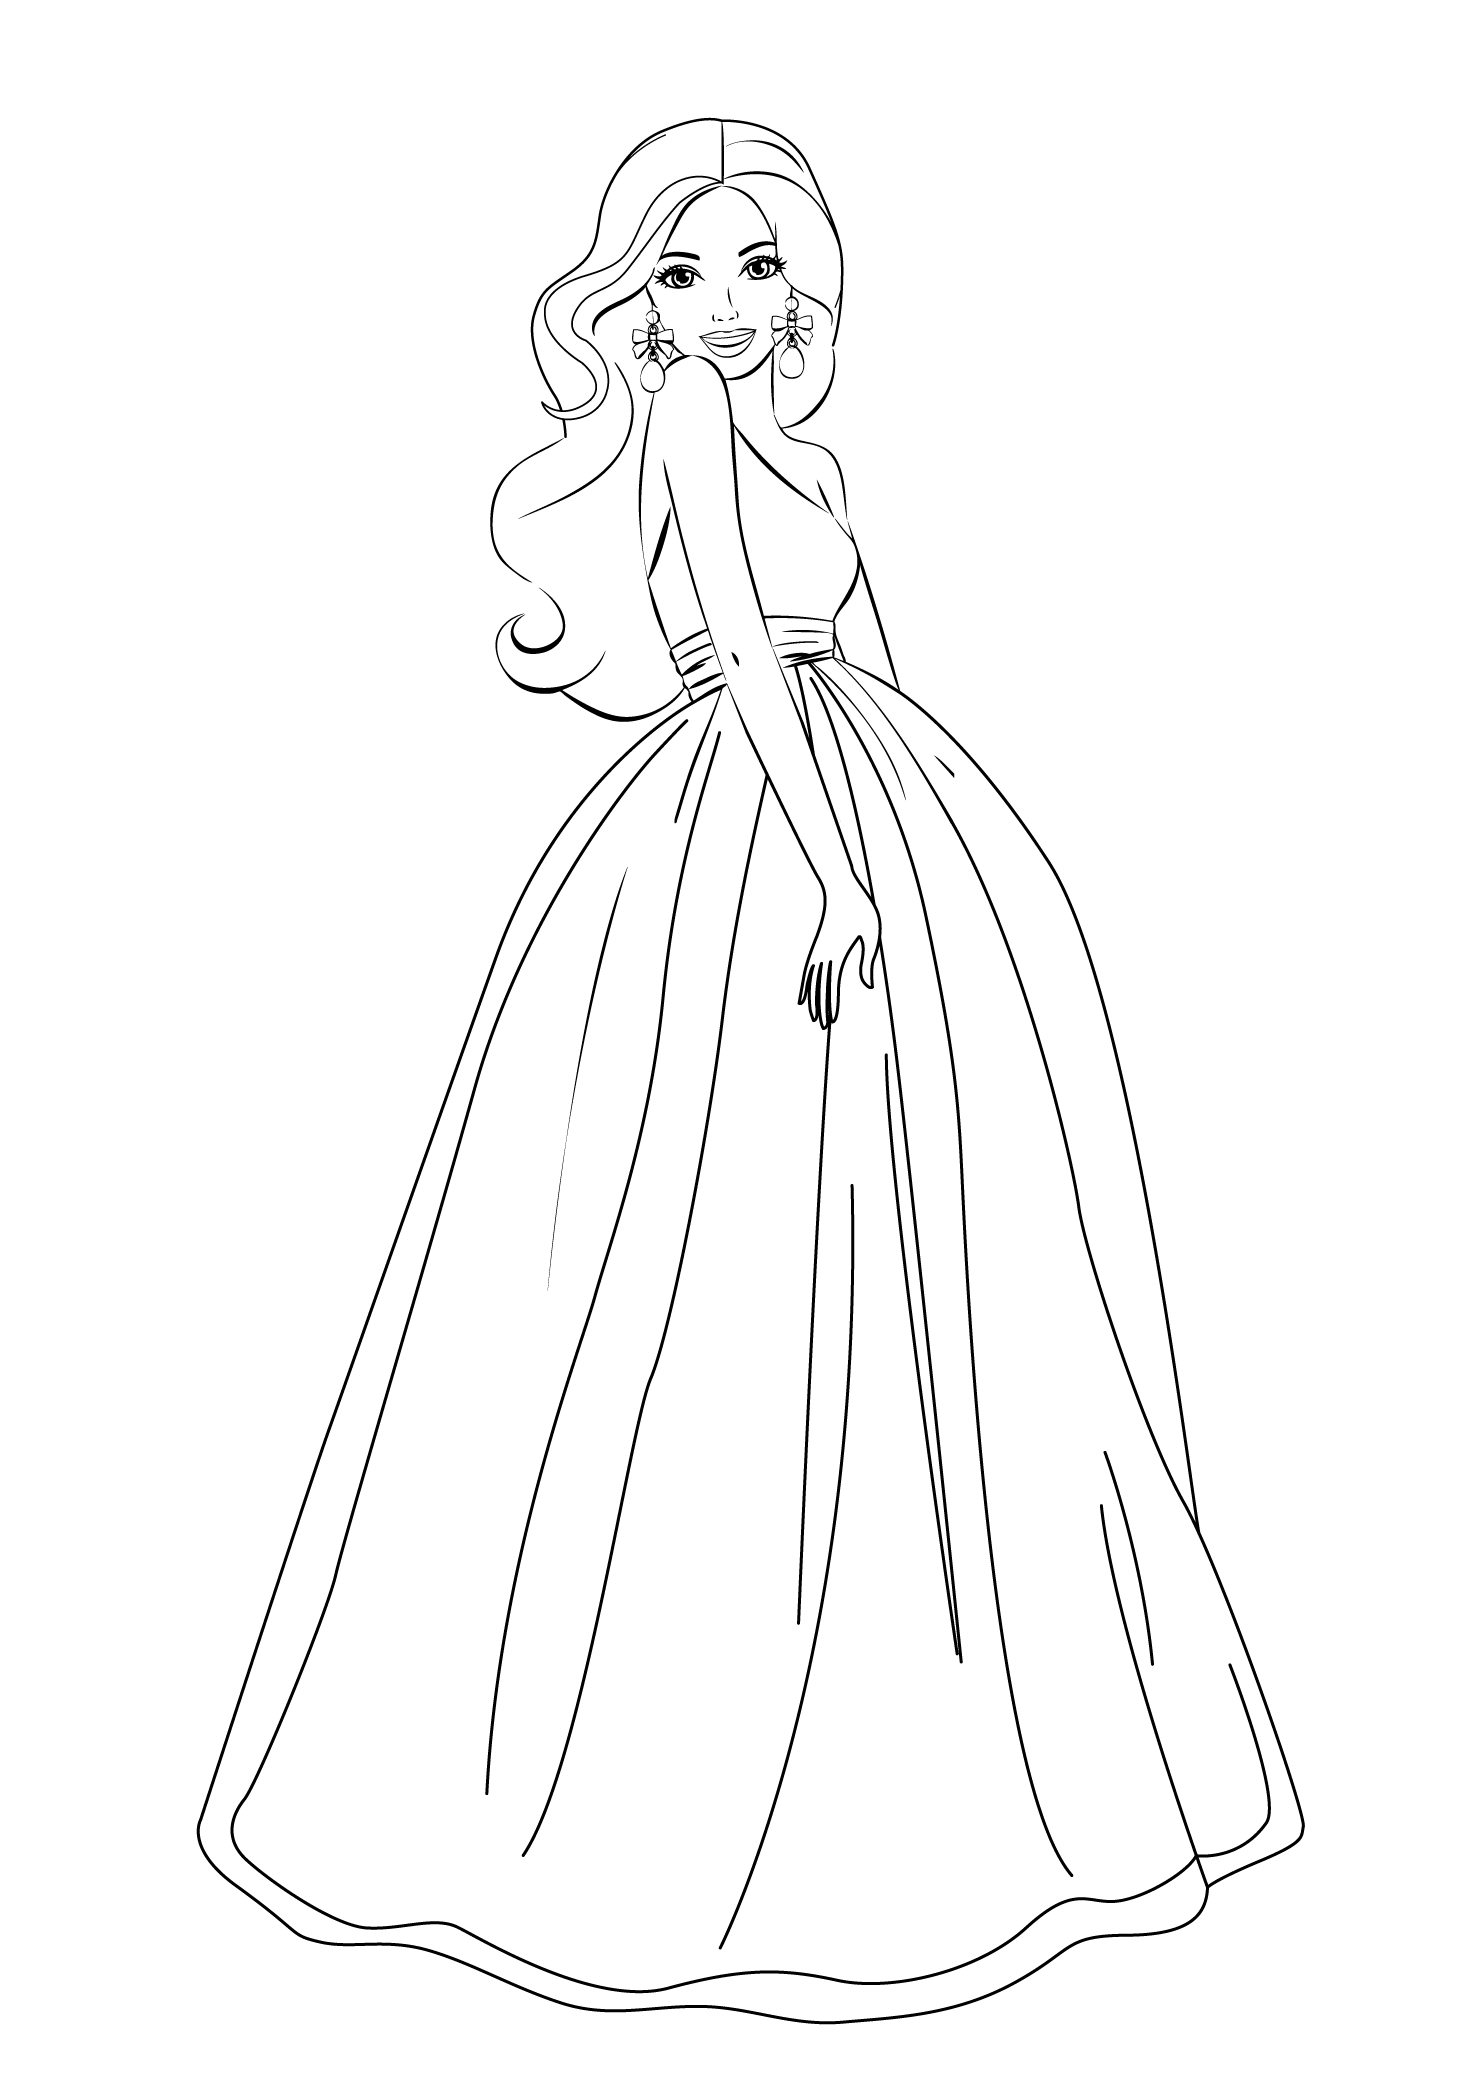 Gallery Of Dressup Free Colouring Pages Barbie Dress Up Coloring